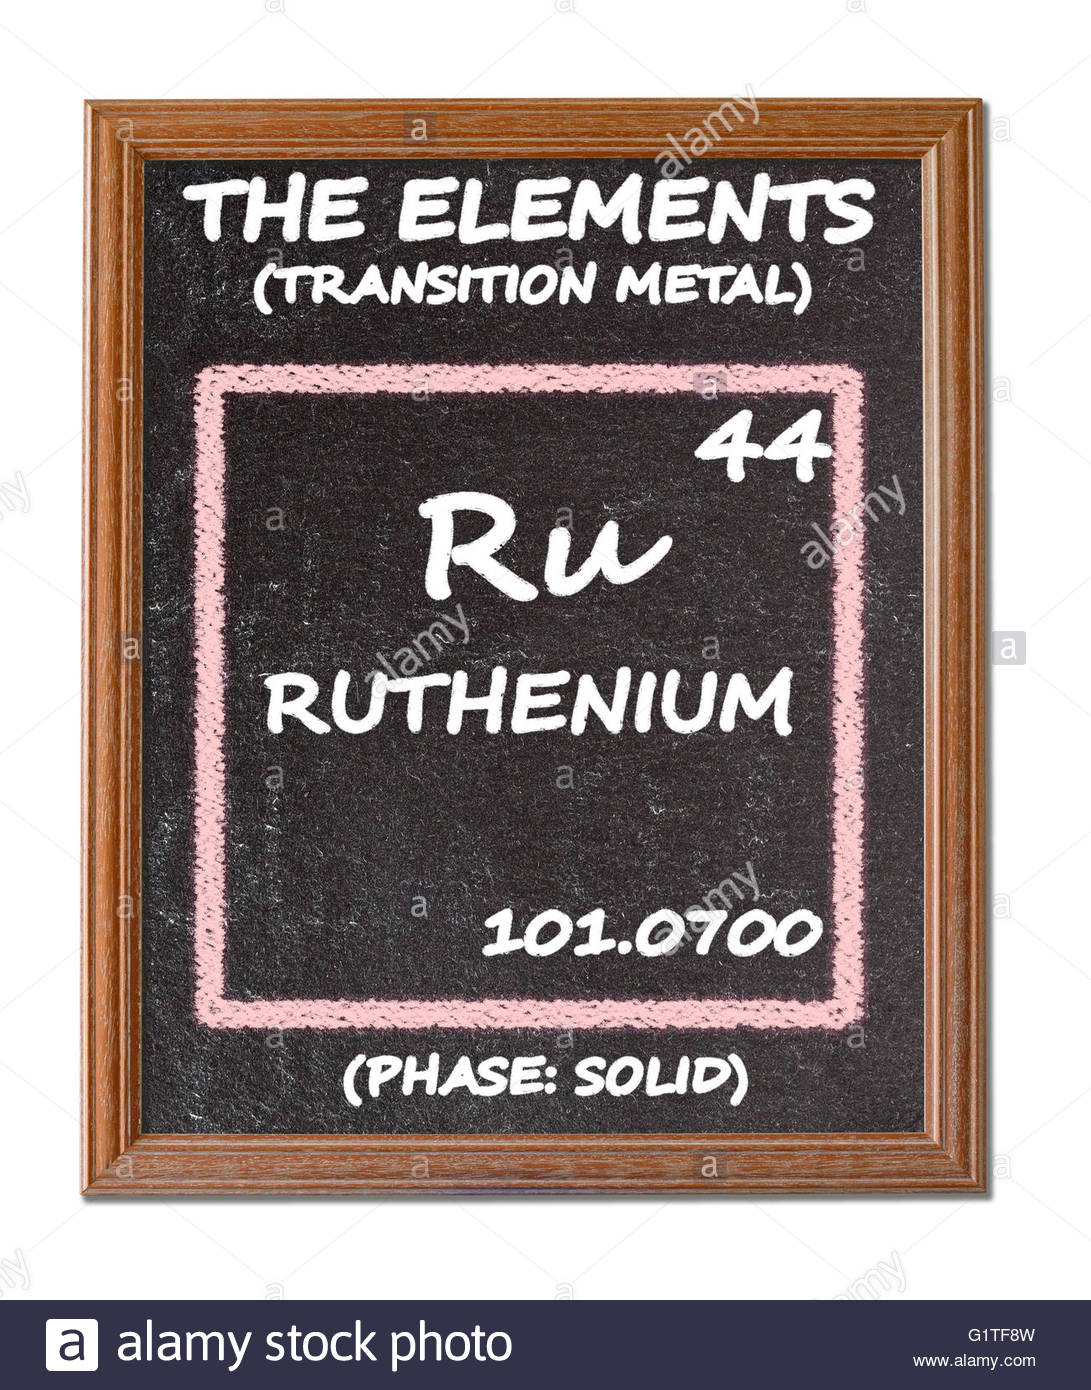 Ruthenium details from the periodic table stock photo royalty ruthenium details from the periodic table gamestrikefo Choice Image